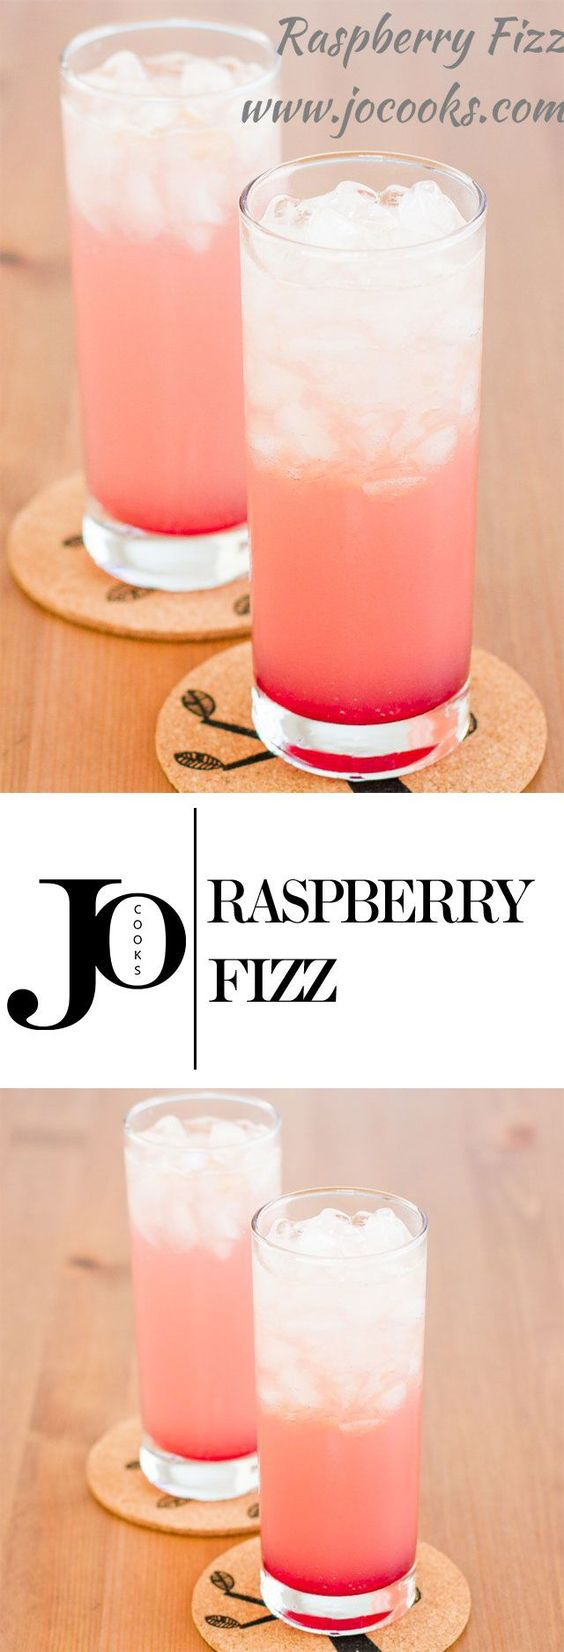 Raspberry Fizz Alcohol Free Party Drinks Recipe via Jo Cooks – a perfect refreshing non alcoholic beverage to quench your summer thirst. 4 simple ingredients for this great kid friendly drink. The BEST Easy Non-Alcoholic Drinks Recipes - Creative Mocktails and Family Friendly, Alcohol-Free, Big Batch Party Beverages for a Crowd!